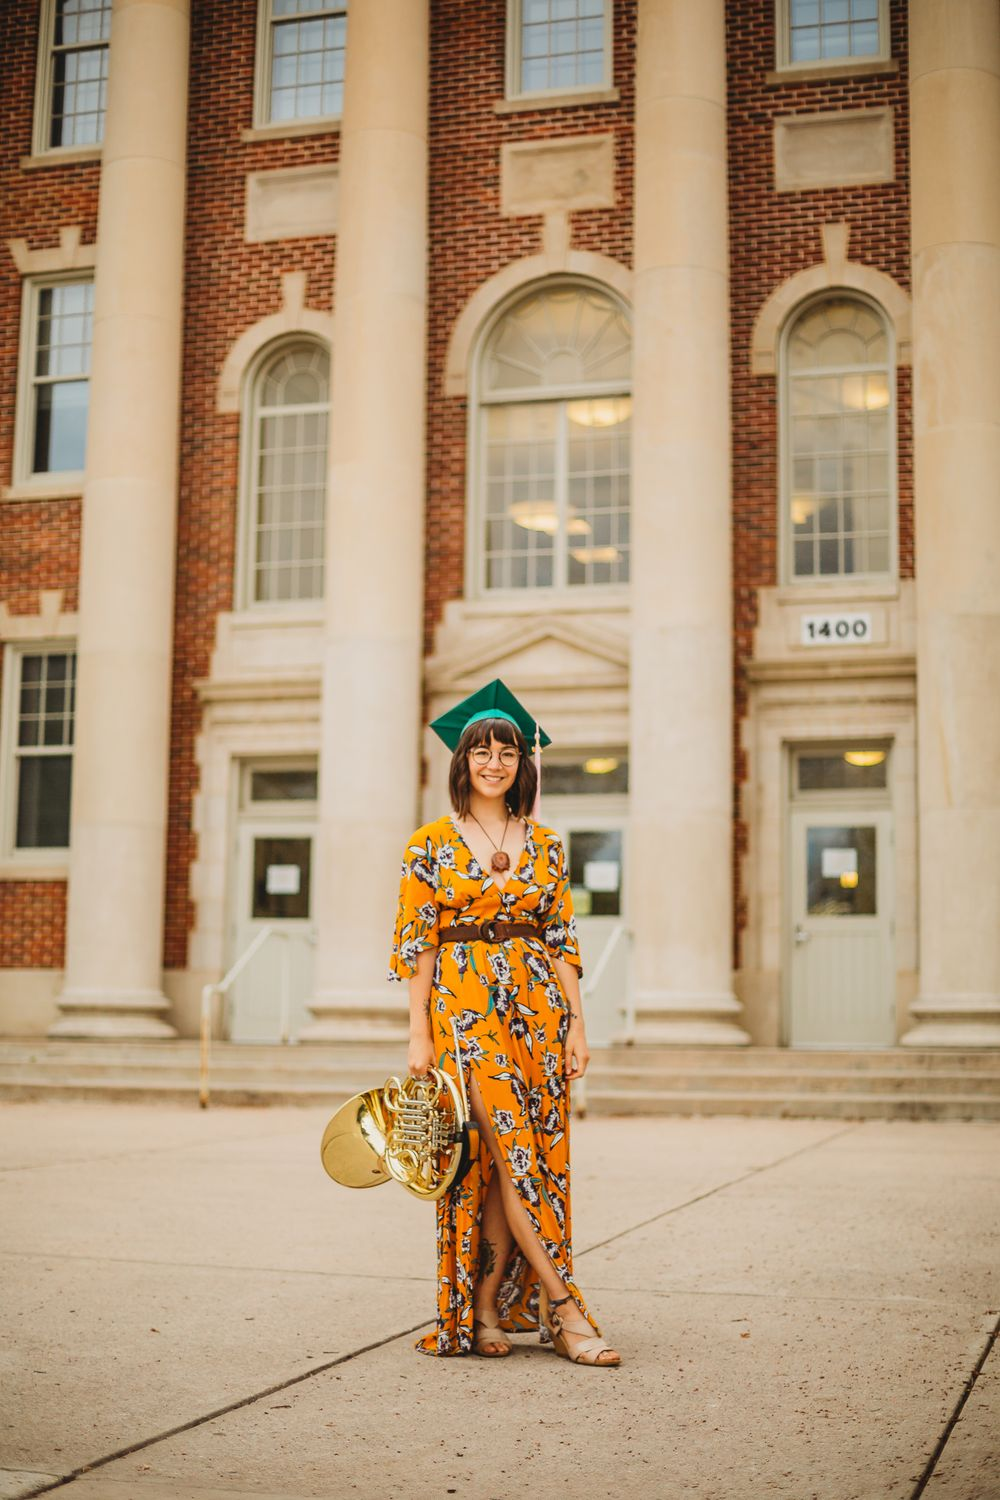 A Colorado State University graduate poses for a portrait at The University Center for the Arts in Fort Collins.